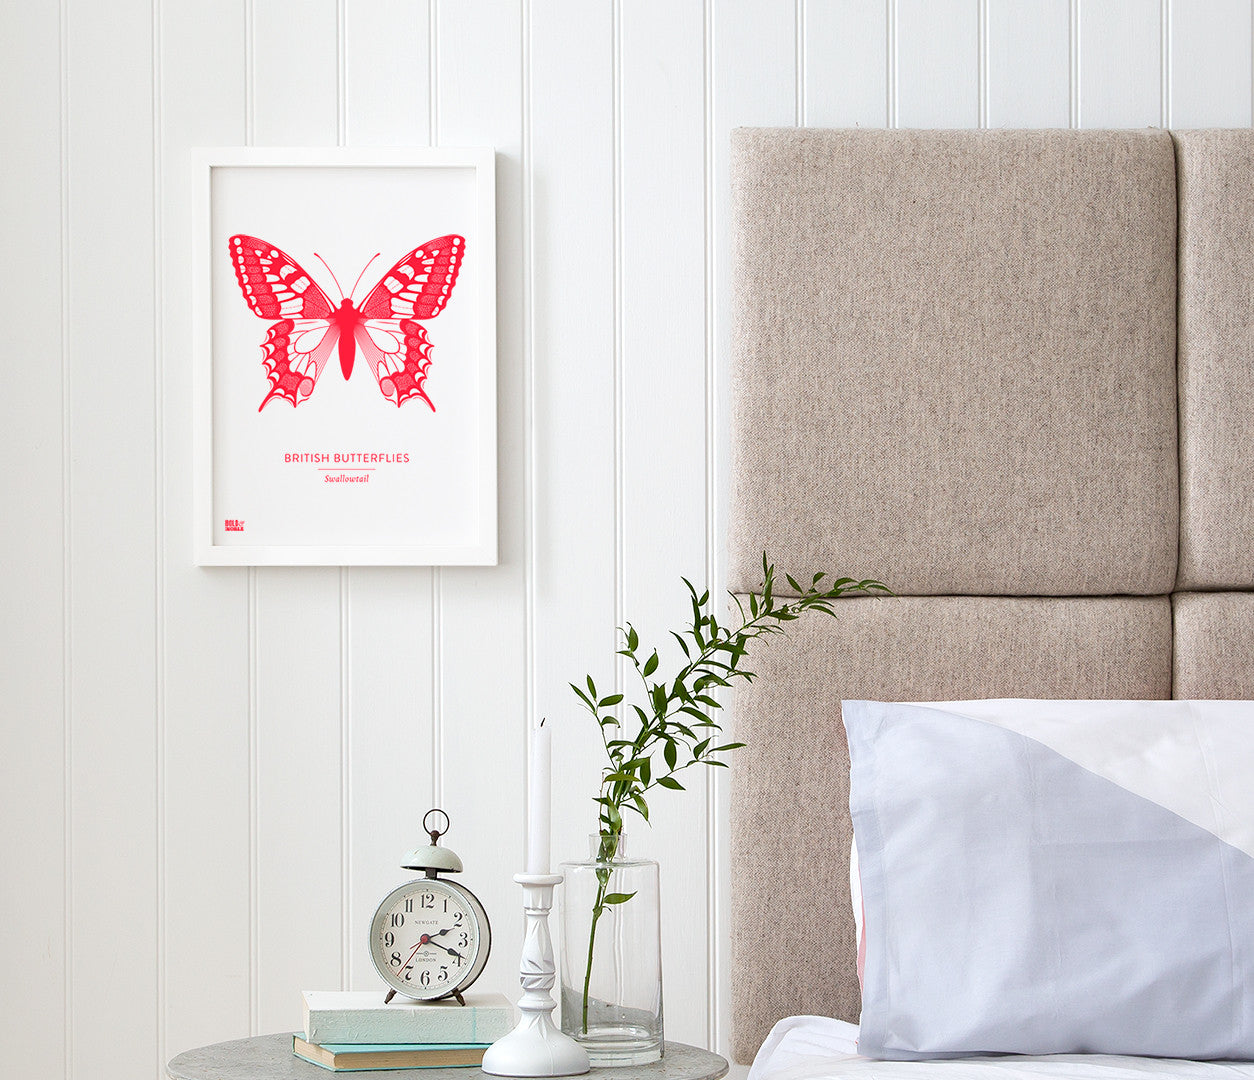 British Butterflies Art Print in Neon Pink, Lovely Print Designs for the Home